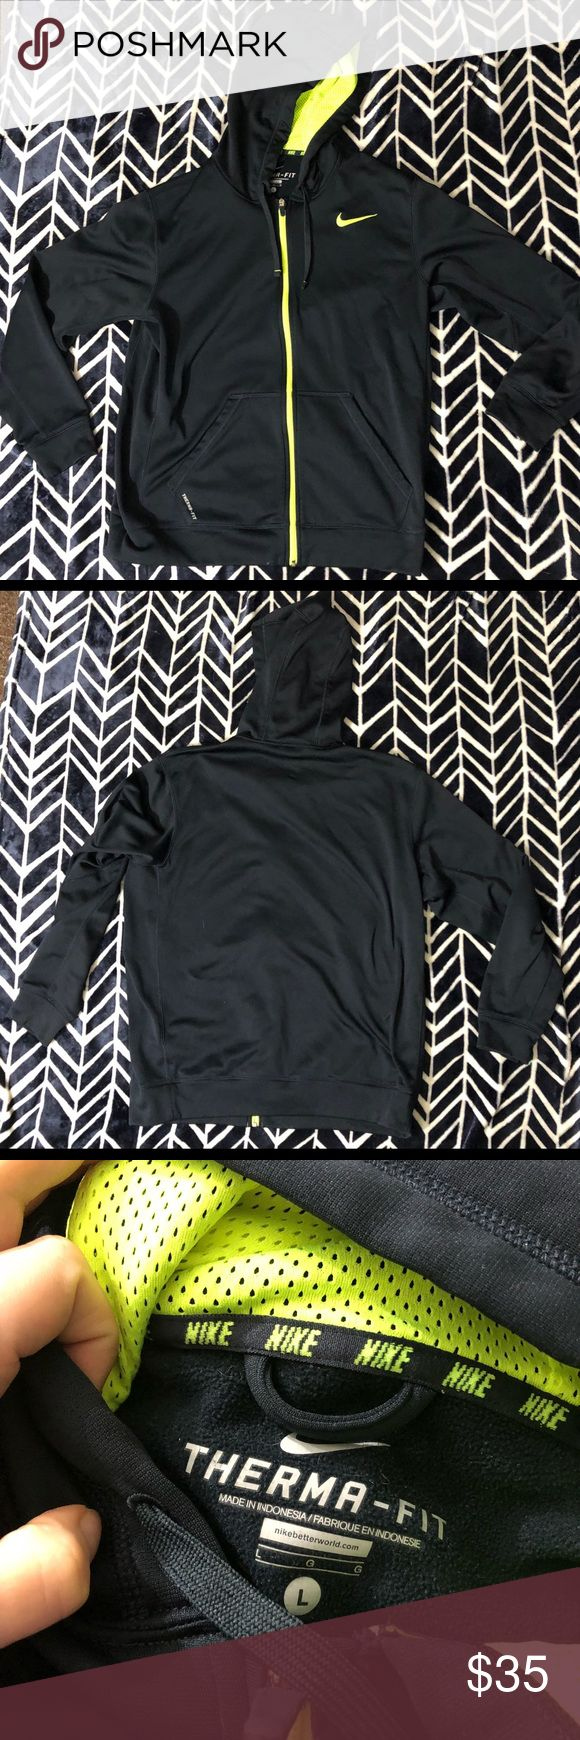 """Nike Zip Up Hoodie Men's size large Nike Dri-fit Zip Up Hoodie. Black with neon yellow accent. Excellent condition. No fading, pilling, holes or stains. The chest measures 23"""" flat across, the underarm sleeve length is 22"""" and this is 29"""" long from the tag. Nike Shirts Sweatshirts & Hoodies"""